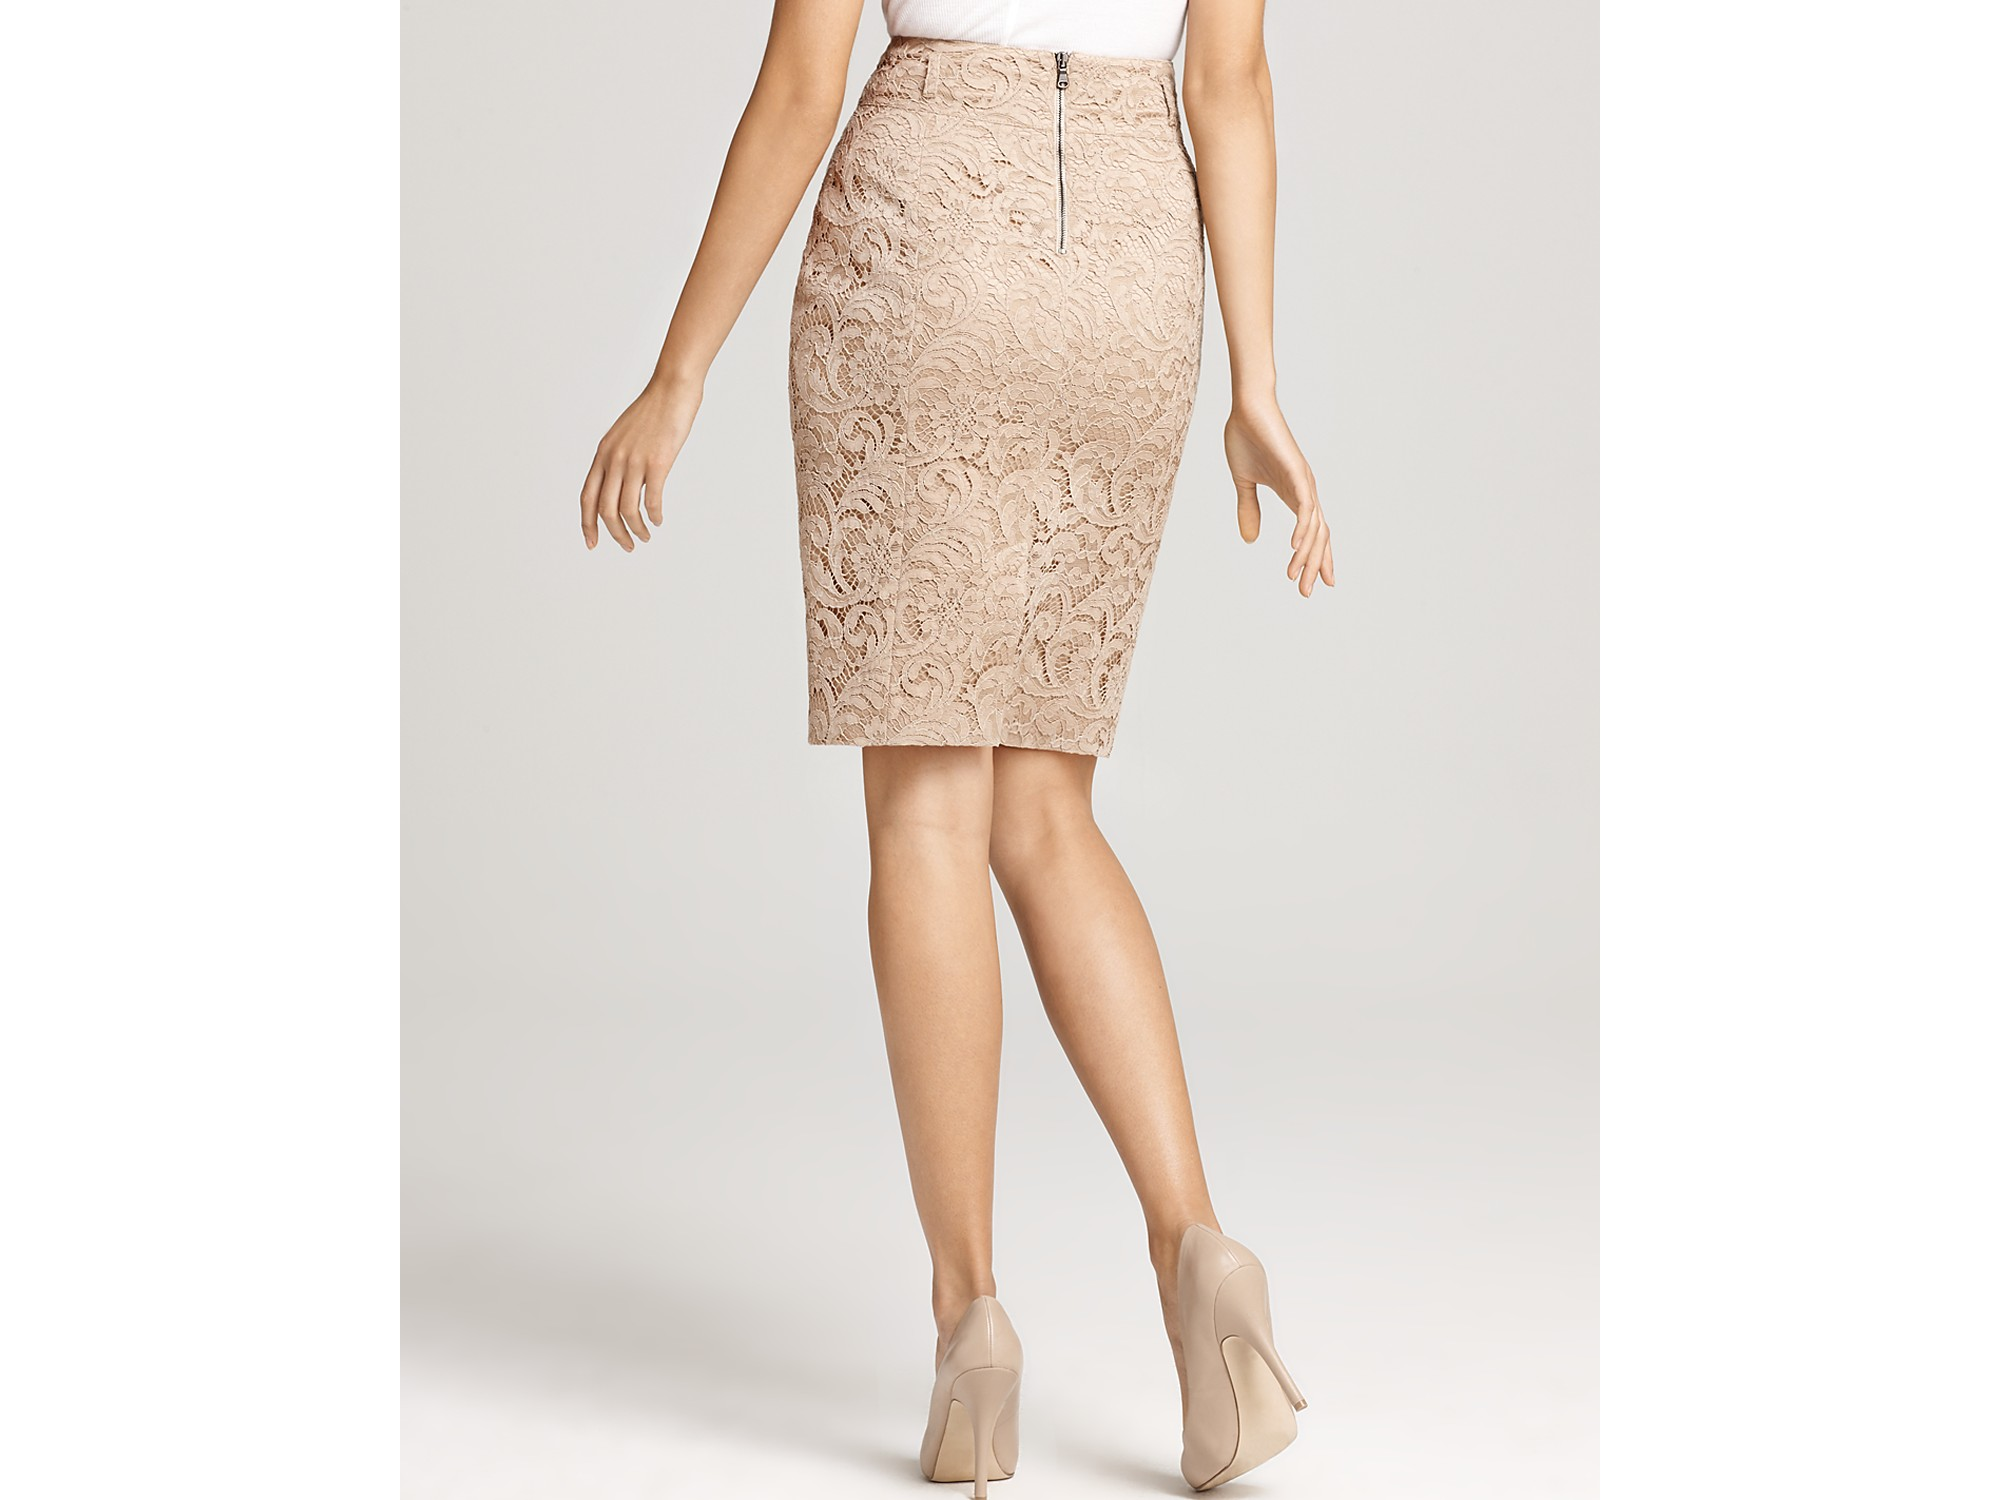 6bd5dbc6d6 Burberry London Nude Lace Skirt in Natural - Lyst